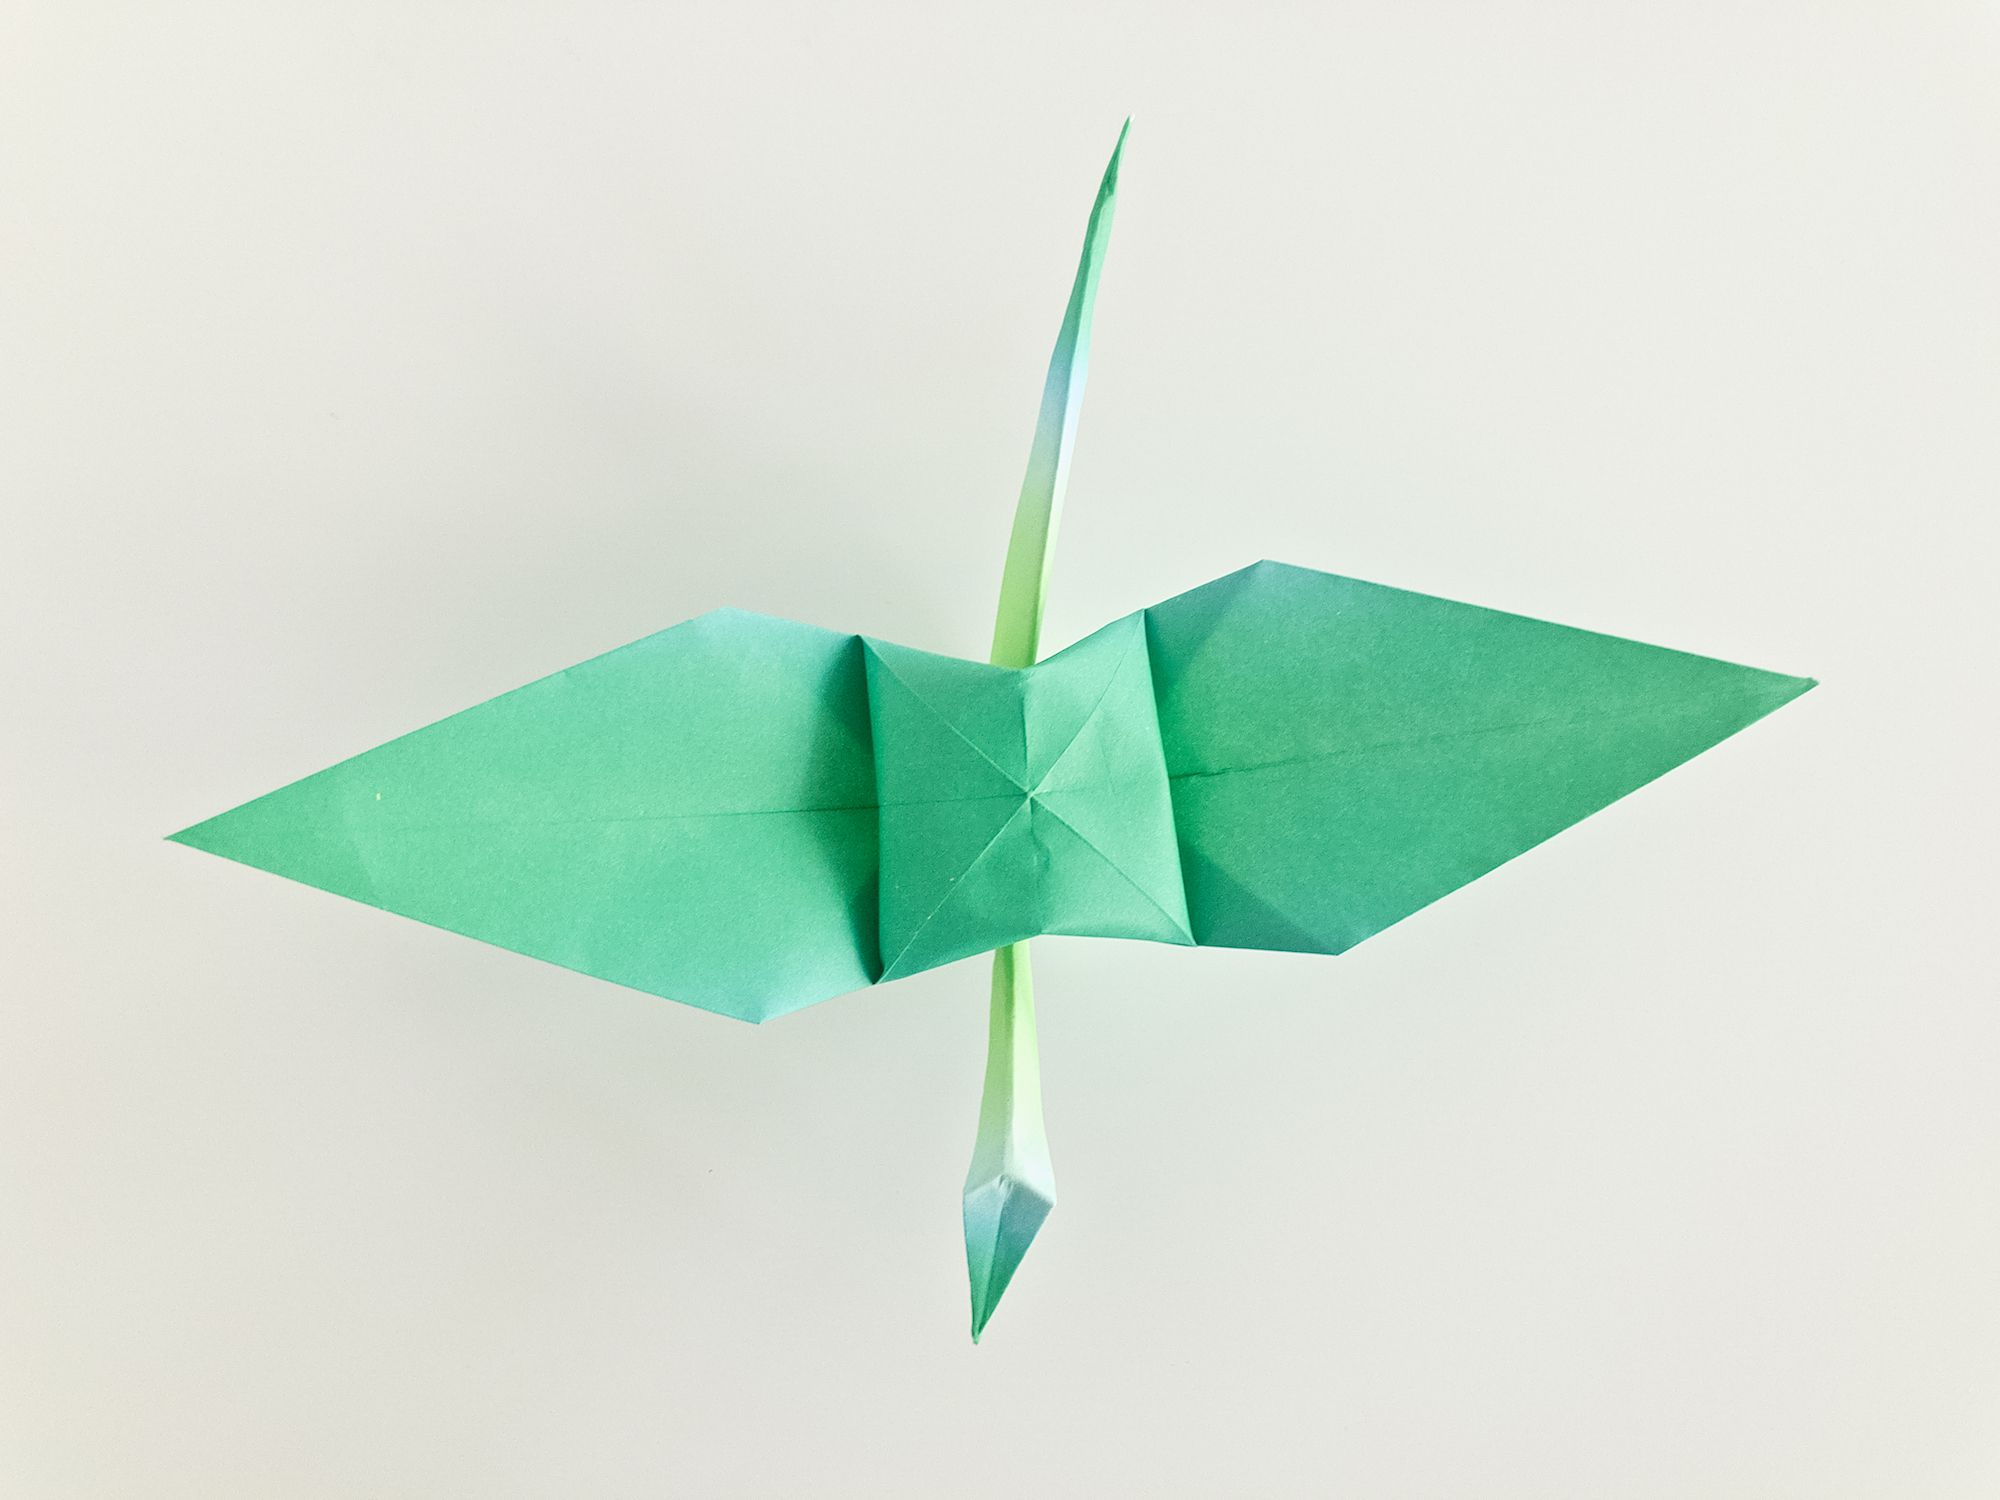 How To Make Origami Crane Tutorial - Easy Origami for Beginners ... | 1500x2000